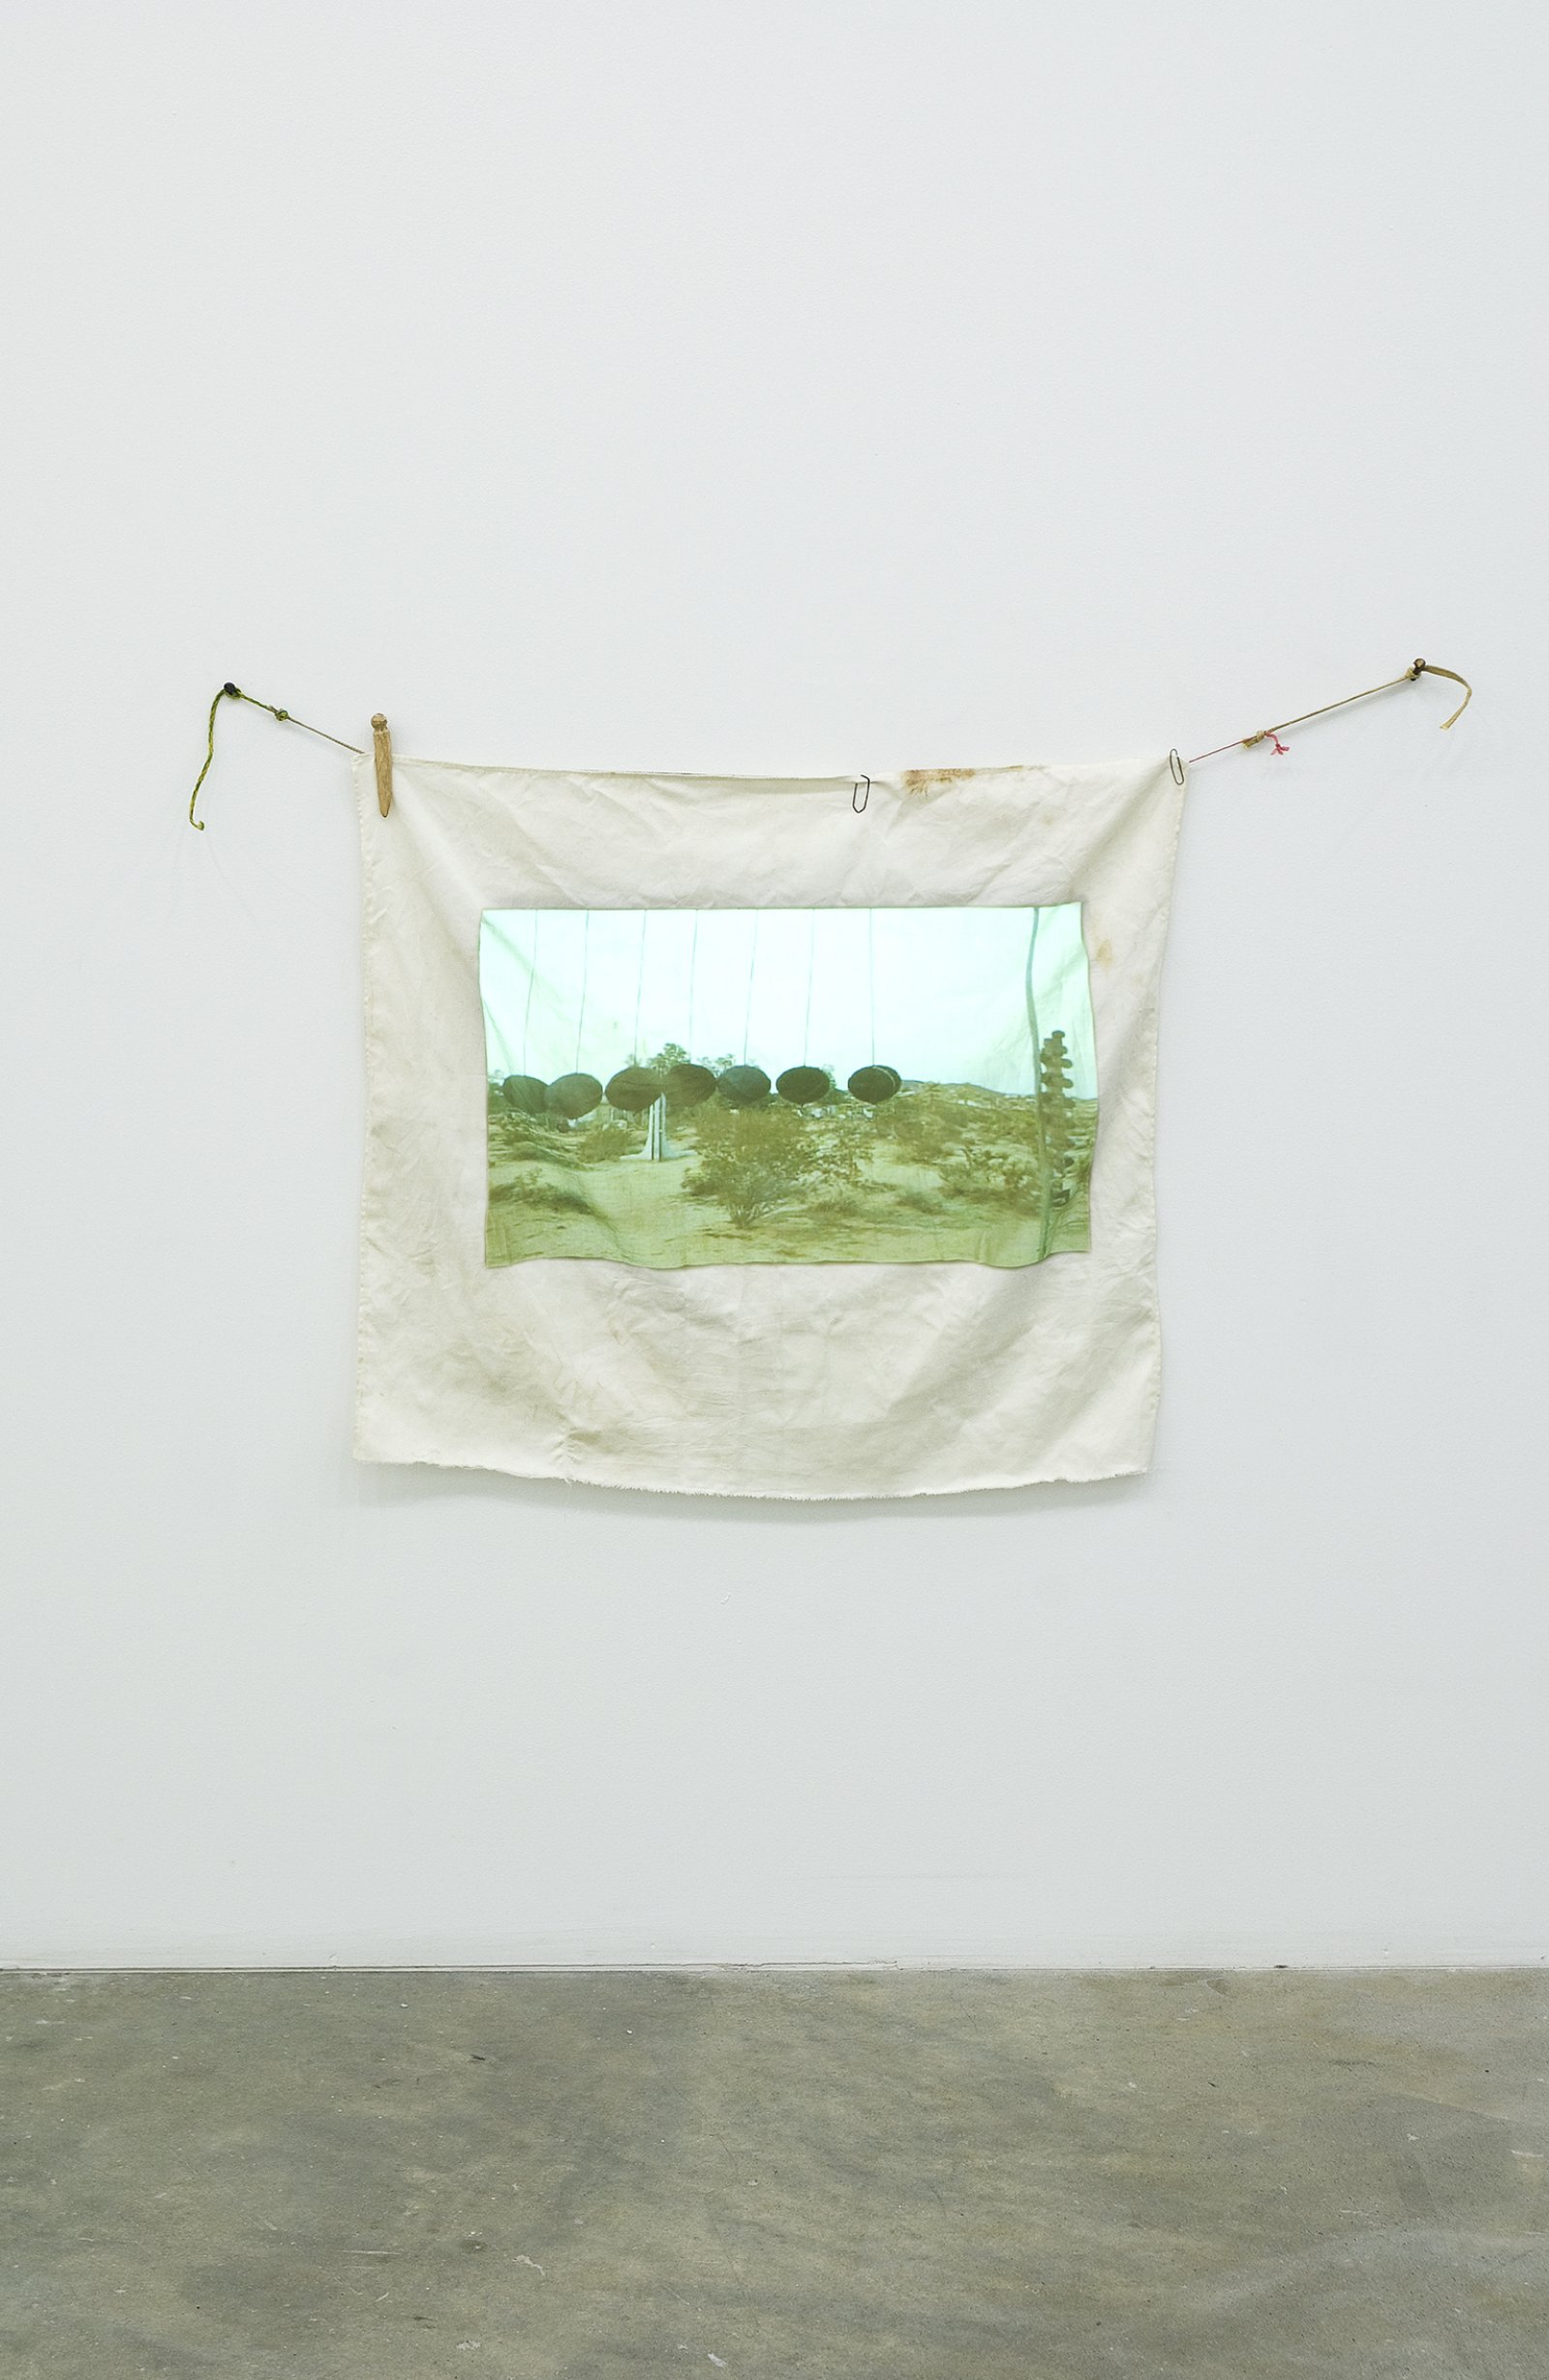 Gareth Moore, Travel Without Movement from Uncertain Pilgrimage, 2006–2007, dvd projection, cloth projection screen, clothespins, paperclips, string, 32 x 41 in. (80 x 105 cm), 12 minutes, 10 seconds by Gareth Moore